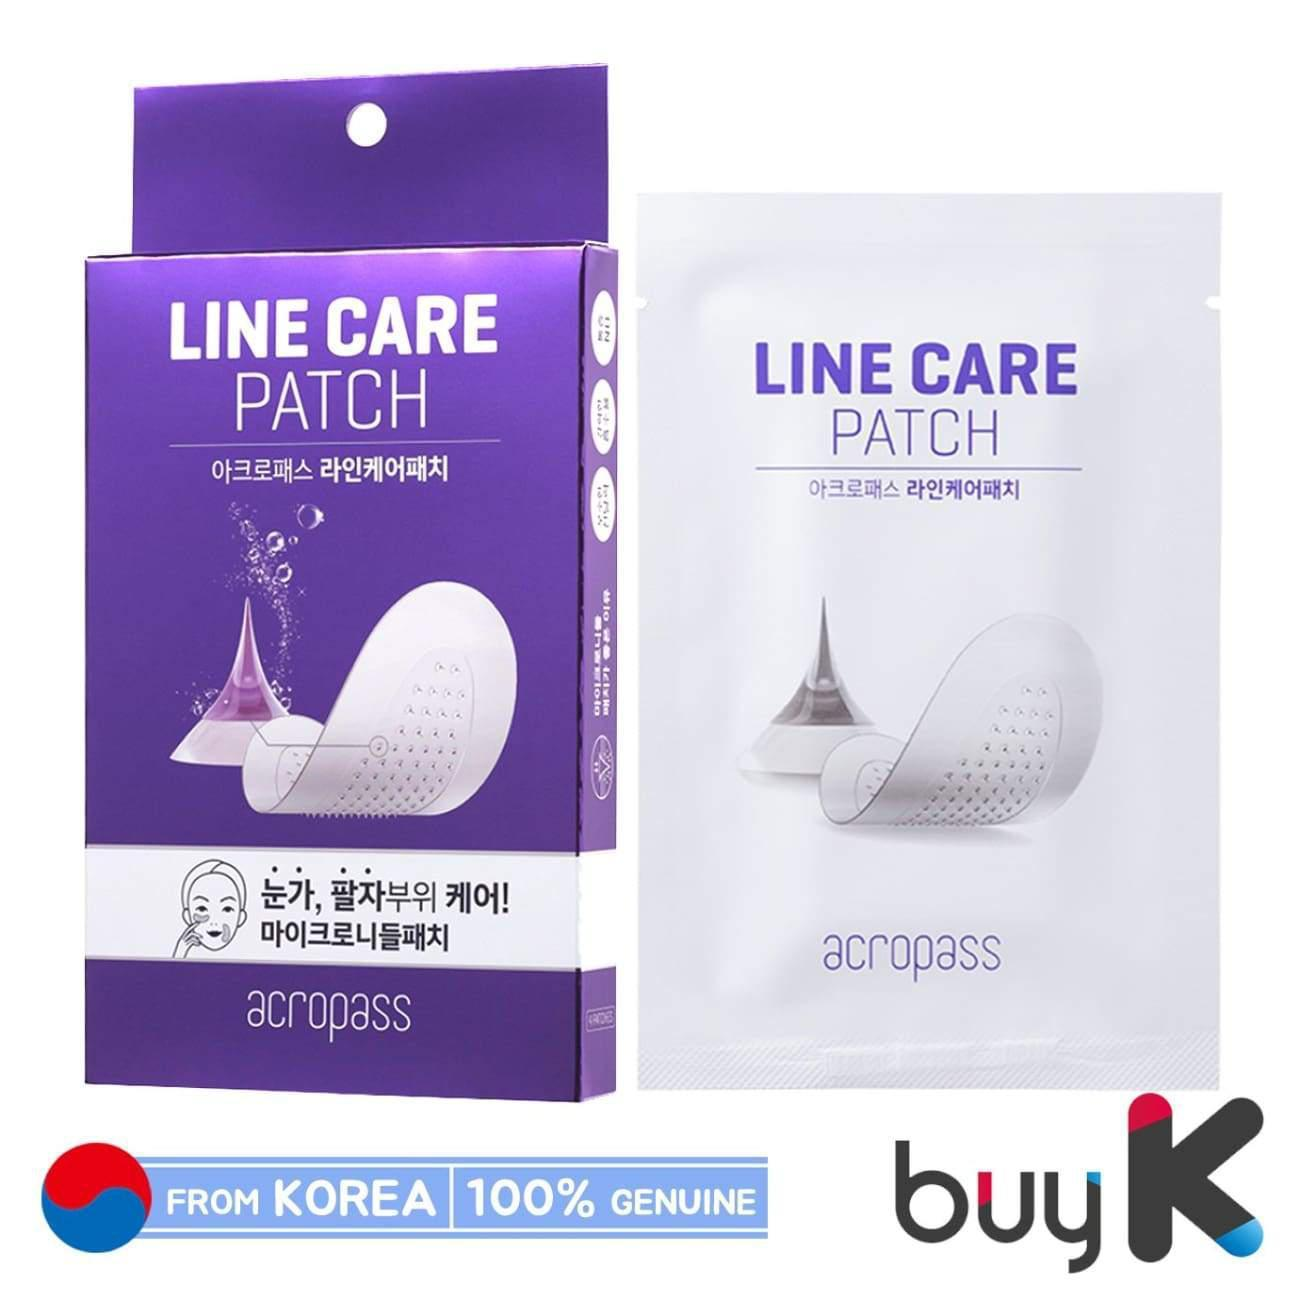 [ACROPASS] Line Care Patch (Wrinkle Remover)